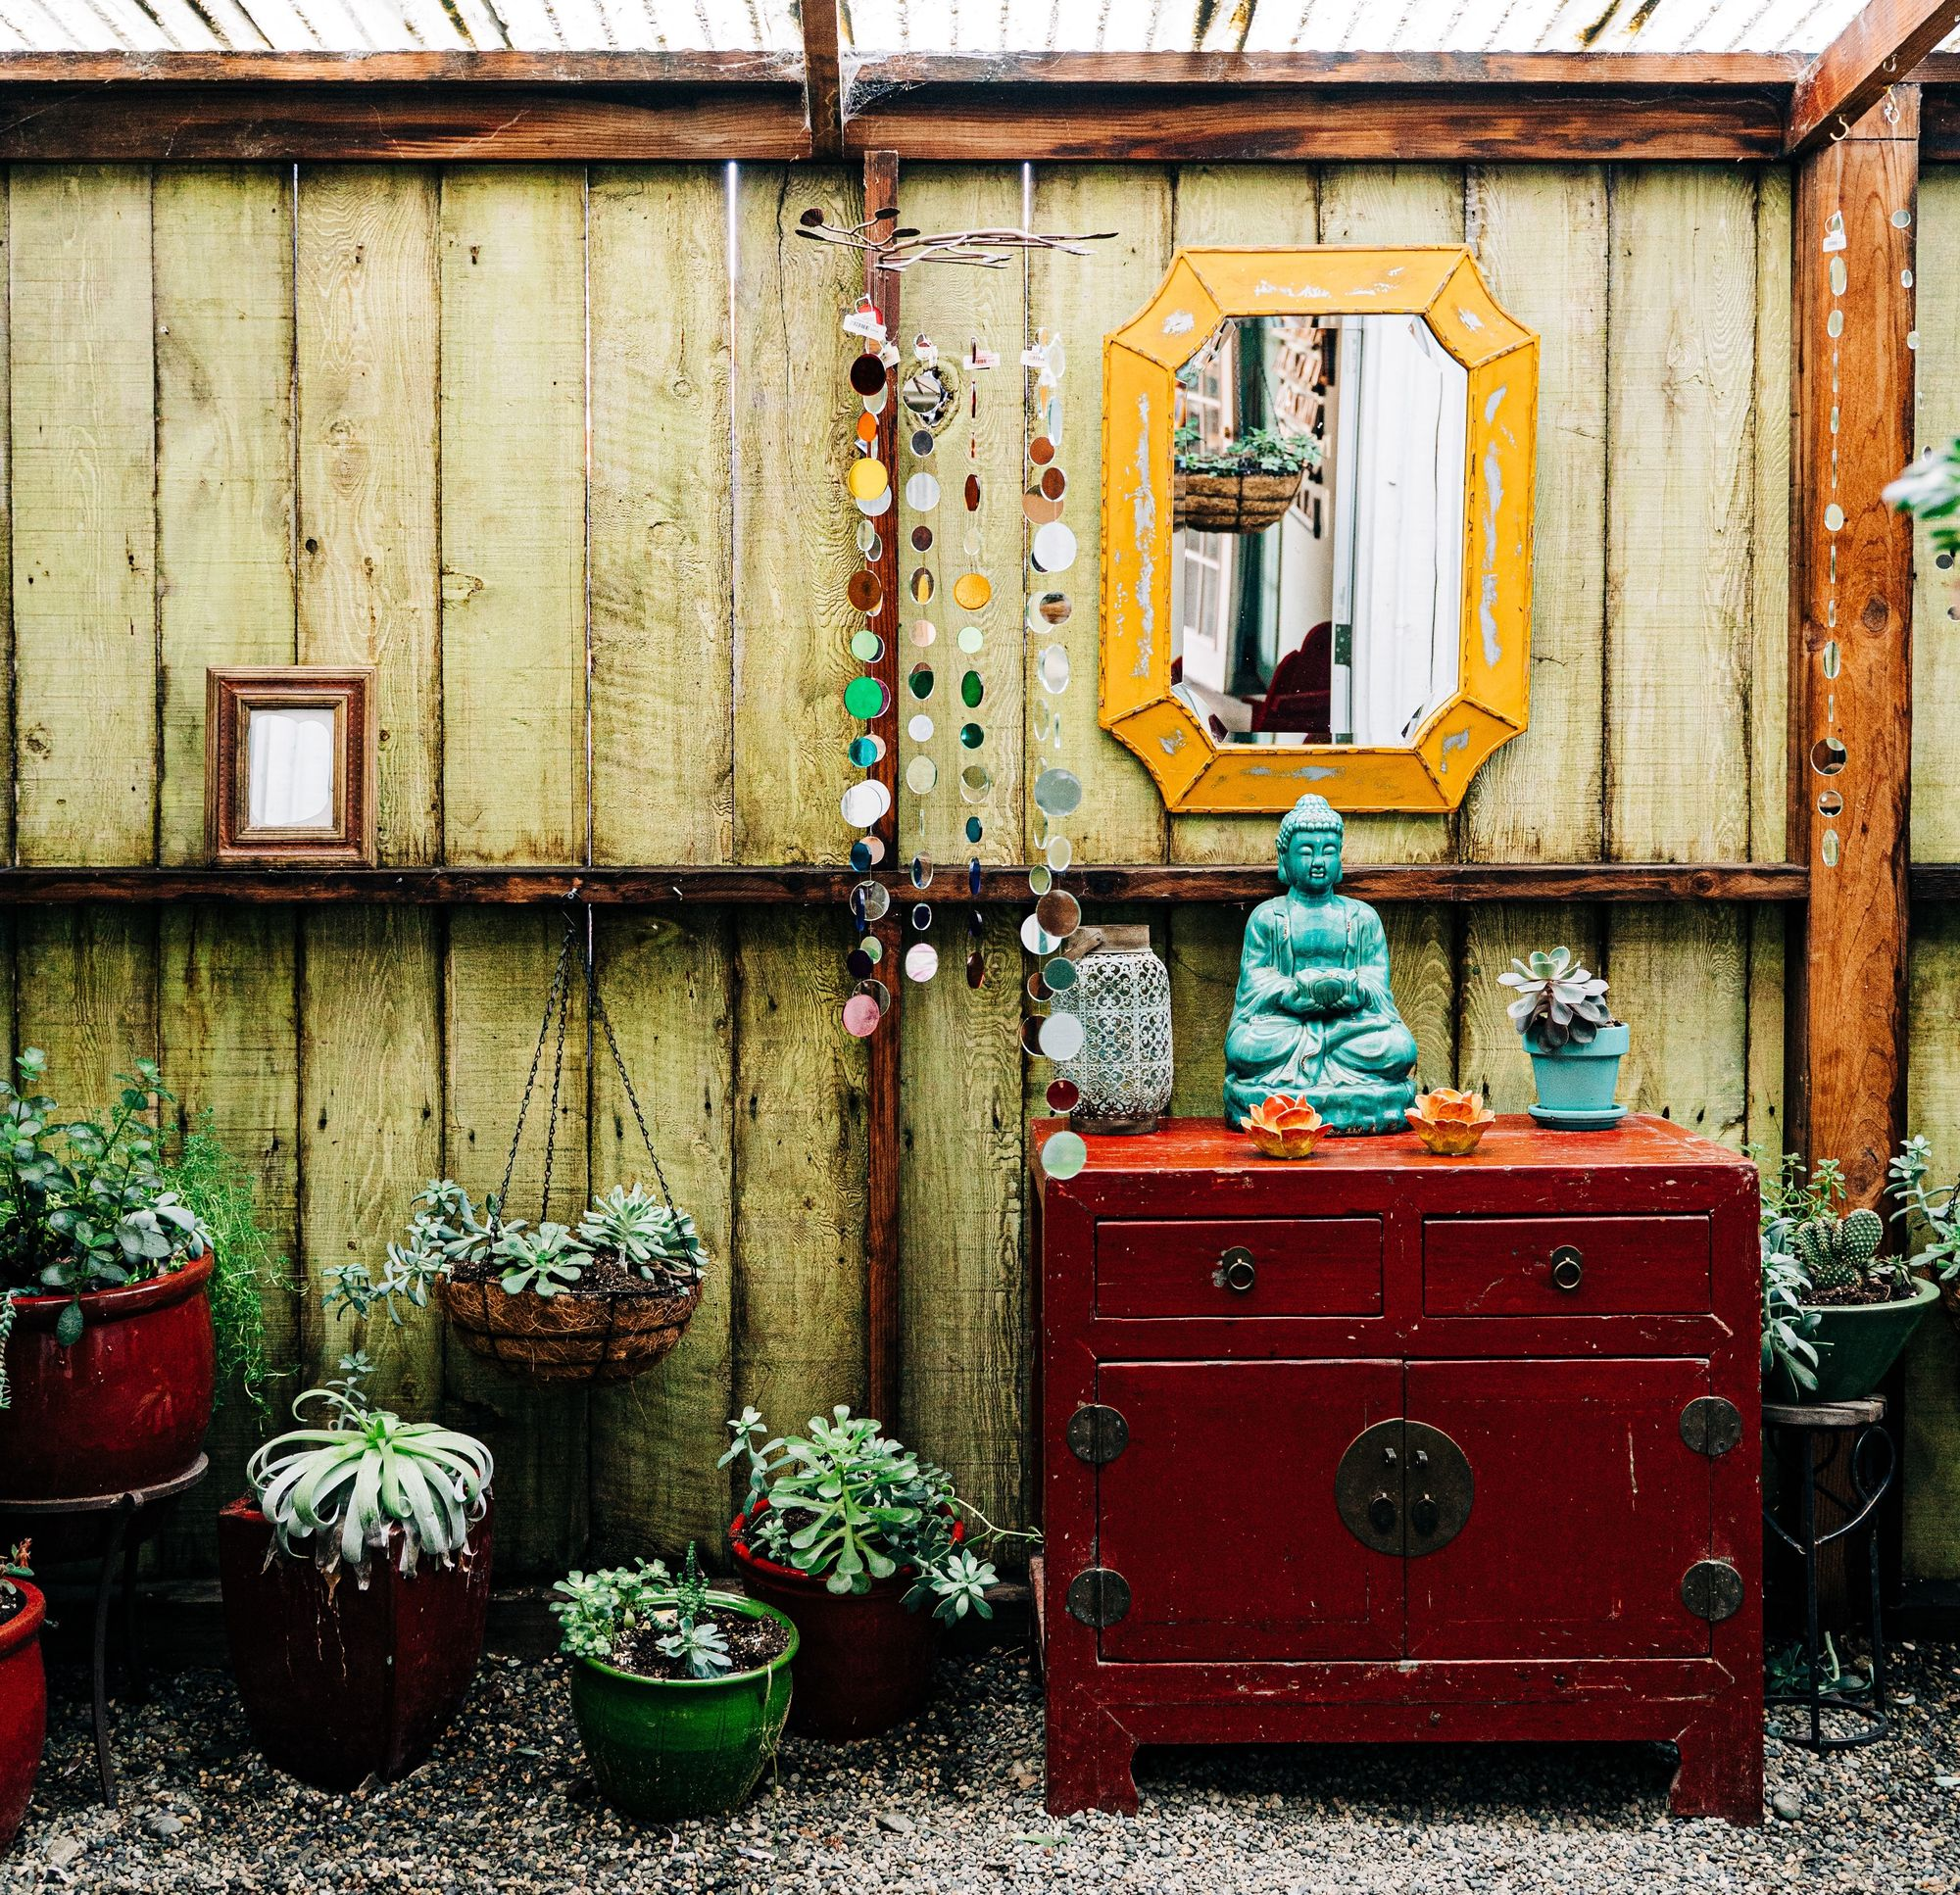 Small business with buddha statue and zen vibes